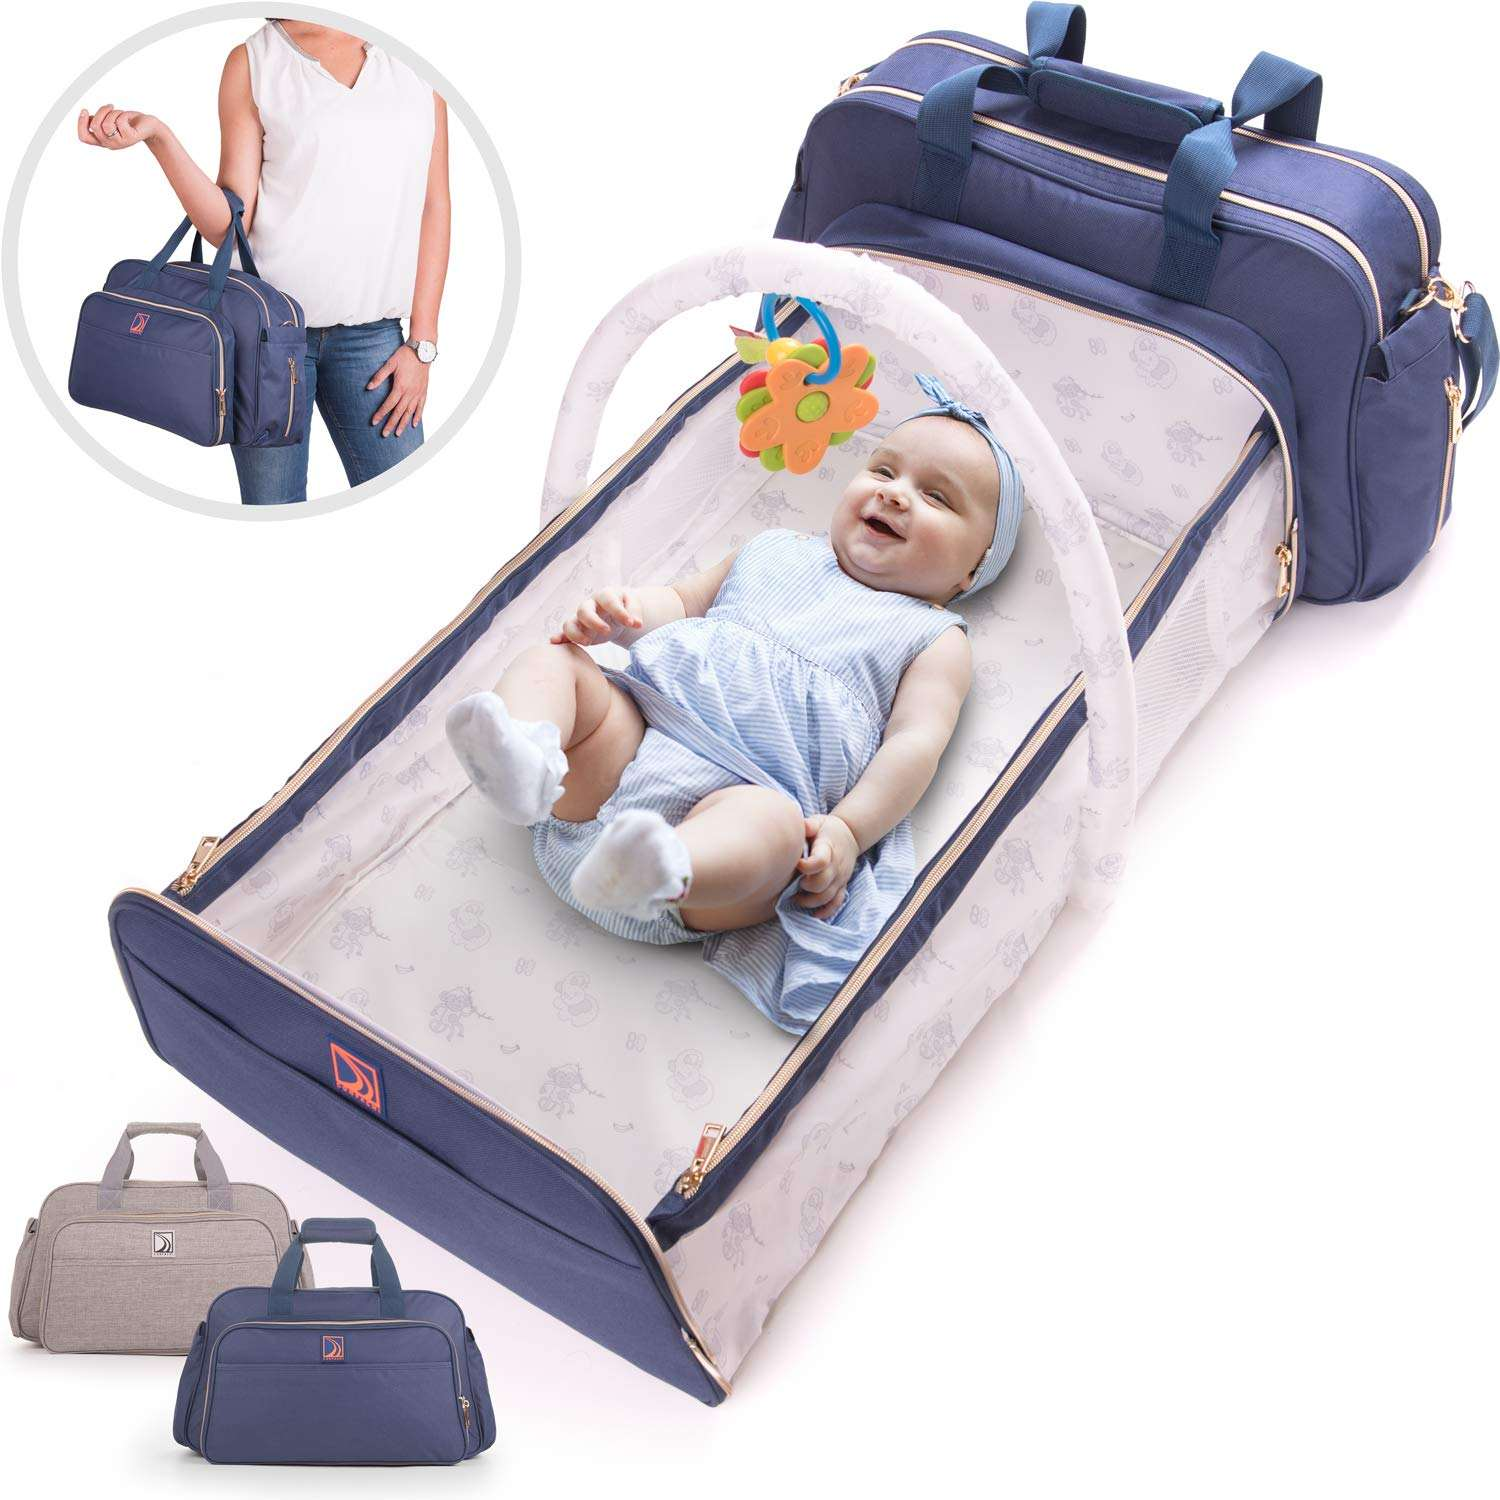 Custom Private Label 4 in 1 Includes Crib Bassinet Nappy Convertible Nappy Changing Pad Baby Diaper Backpack Bag and Bed